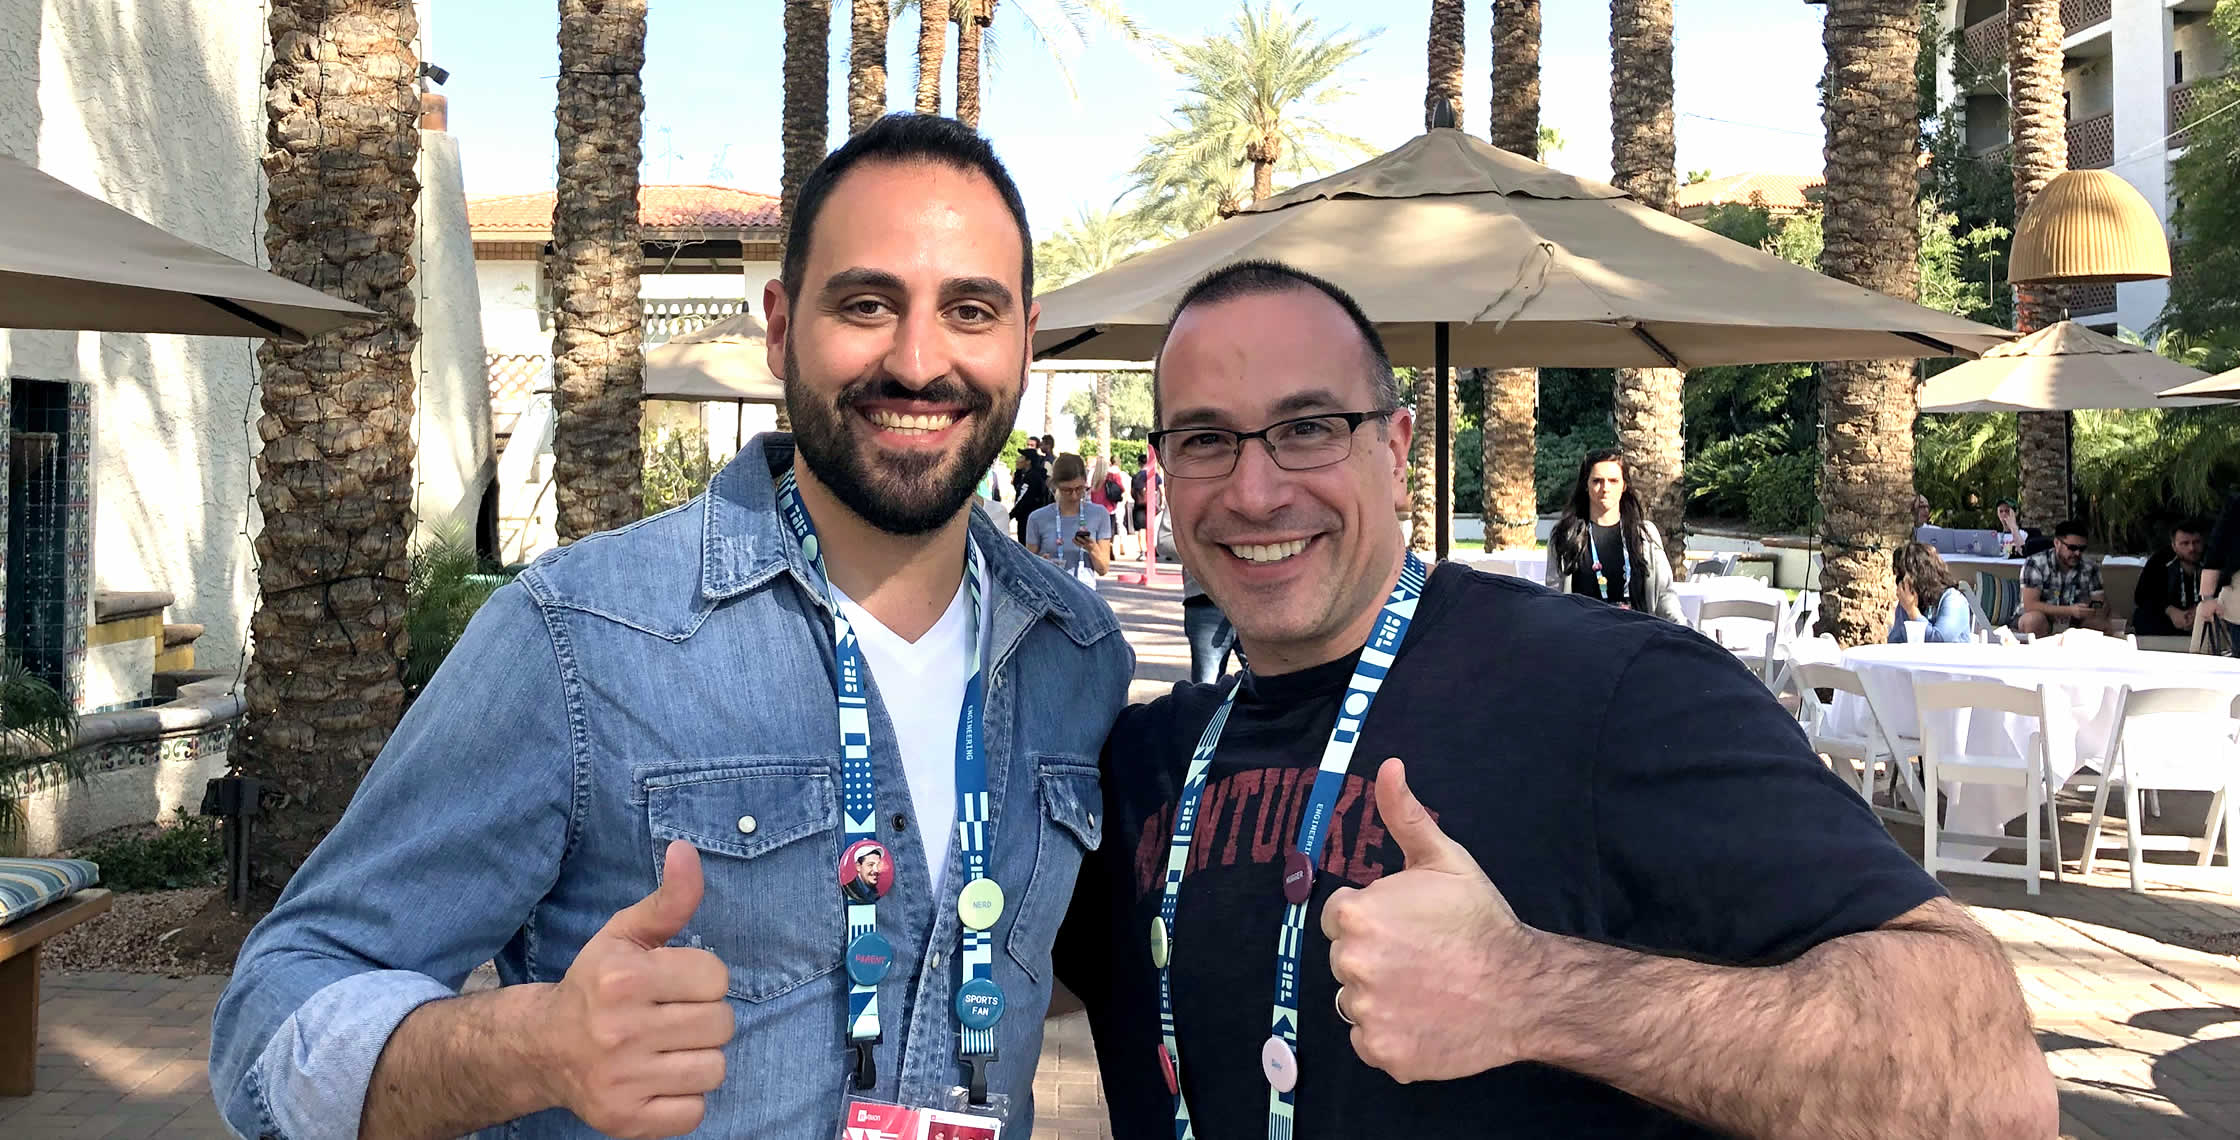 Ben Nadel at InVision In Real Life (IRL) 2019 (Phoenix, AZ) with: Wissam Abirached